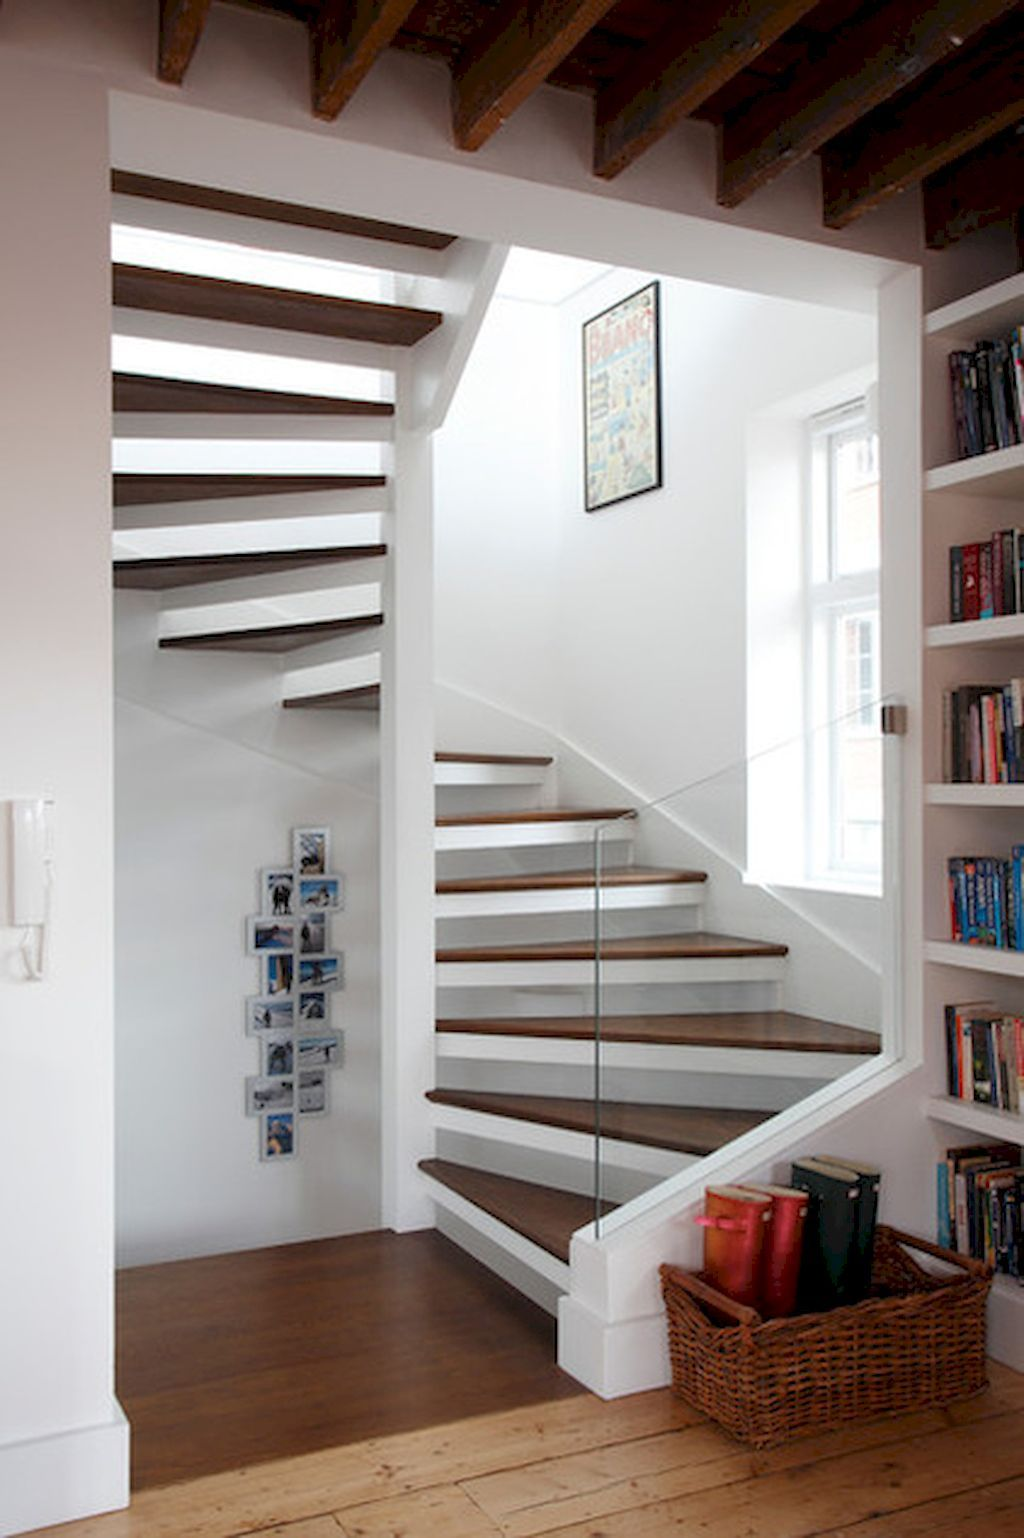 Best 65 Incredible Loft Stair Ideas Small Room Loft Stairs 400 x 300